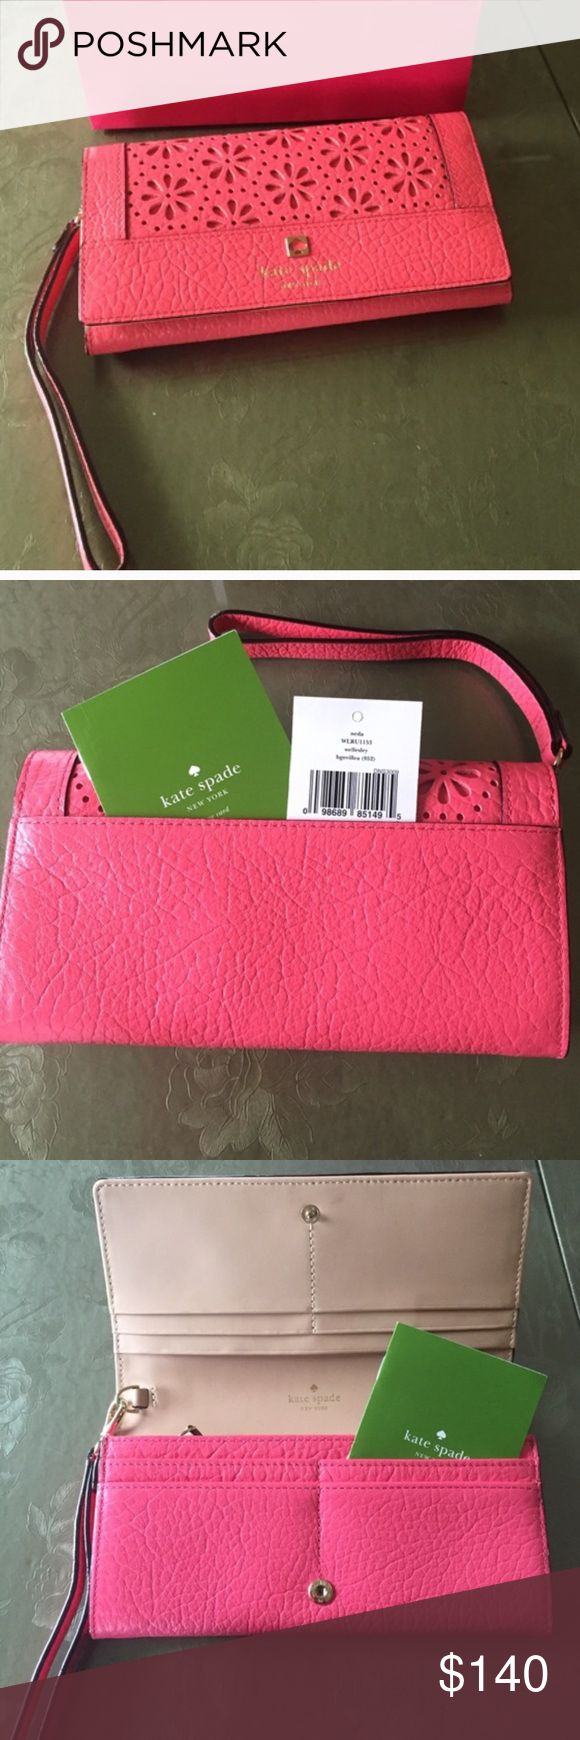 New Kate Spade wristlet New. No flaws. kate spade Bags Clutches & Wristlets